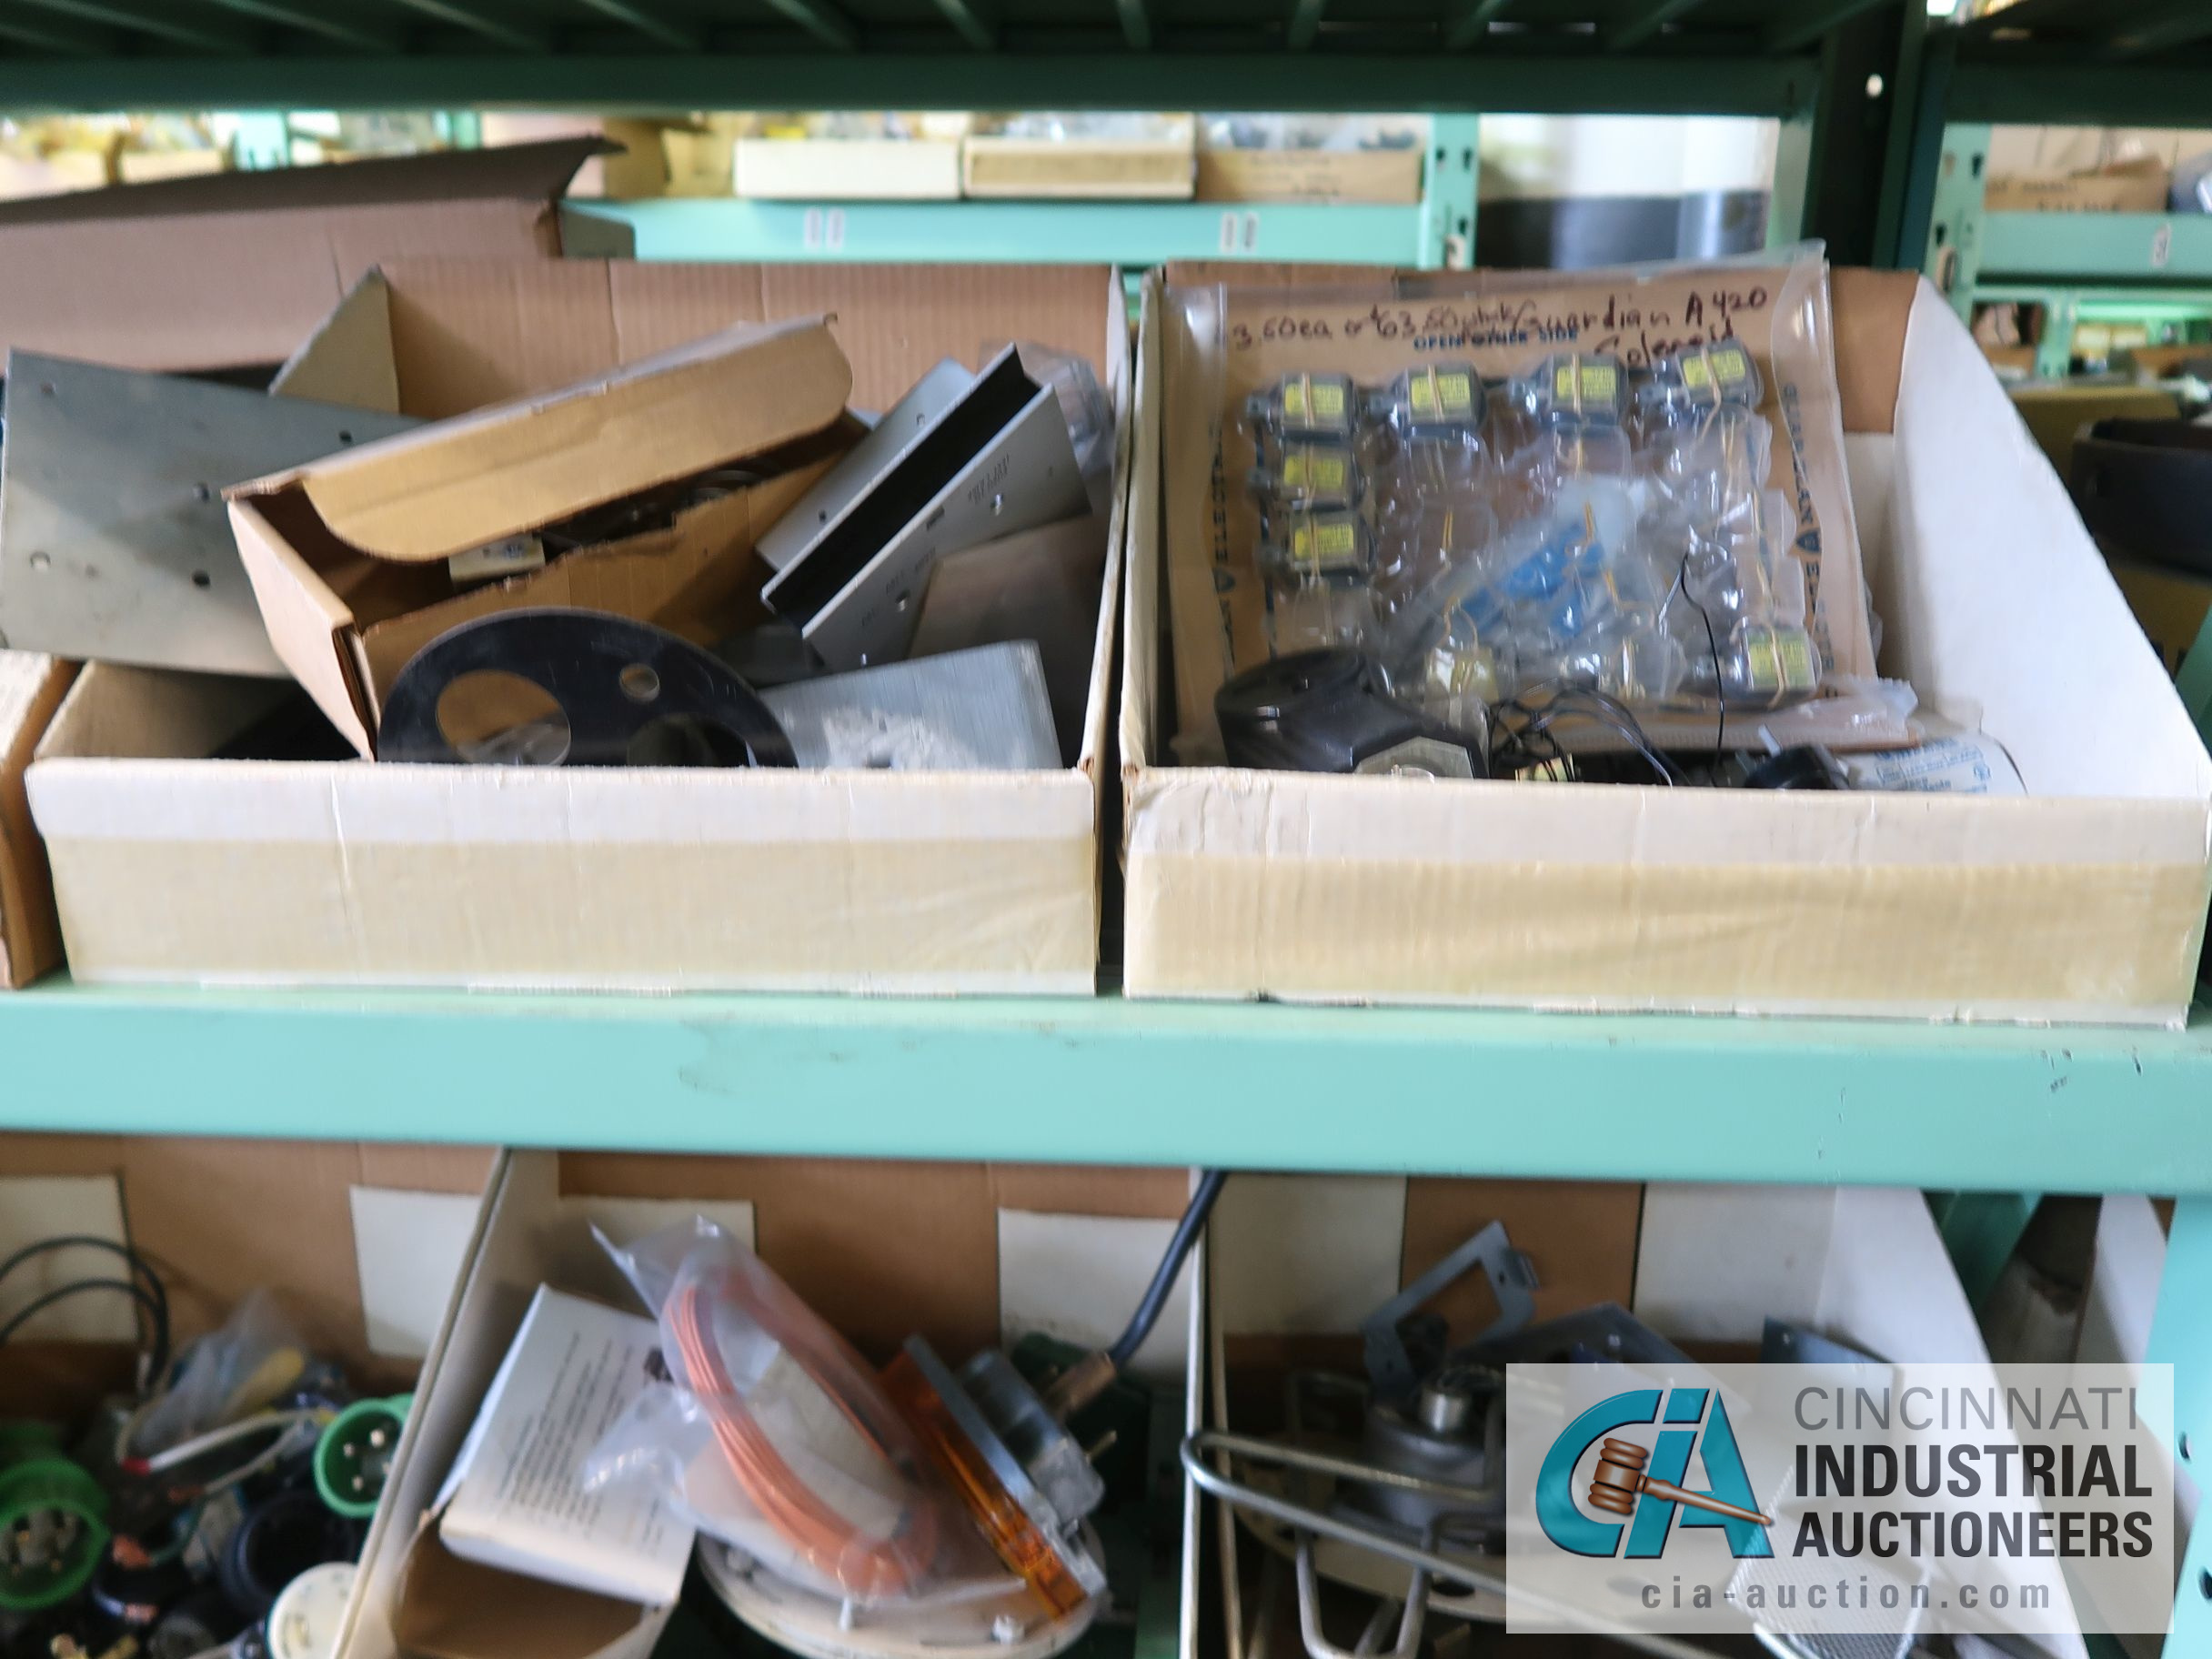 CONTENTS OF (6) RACKS INCLUDING MISCELLANEOUS AUTOMOTIVE PARTS, BREAKS, ROTORS, GASKETS, MOUNTING - Image 17 of 38